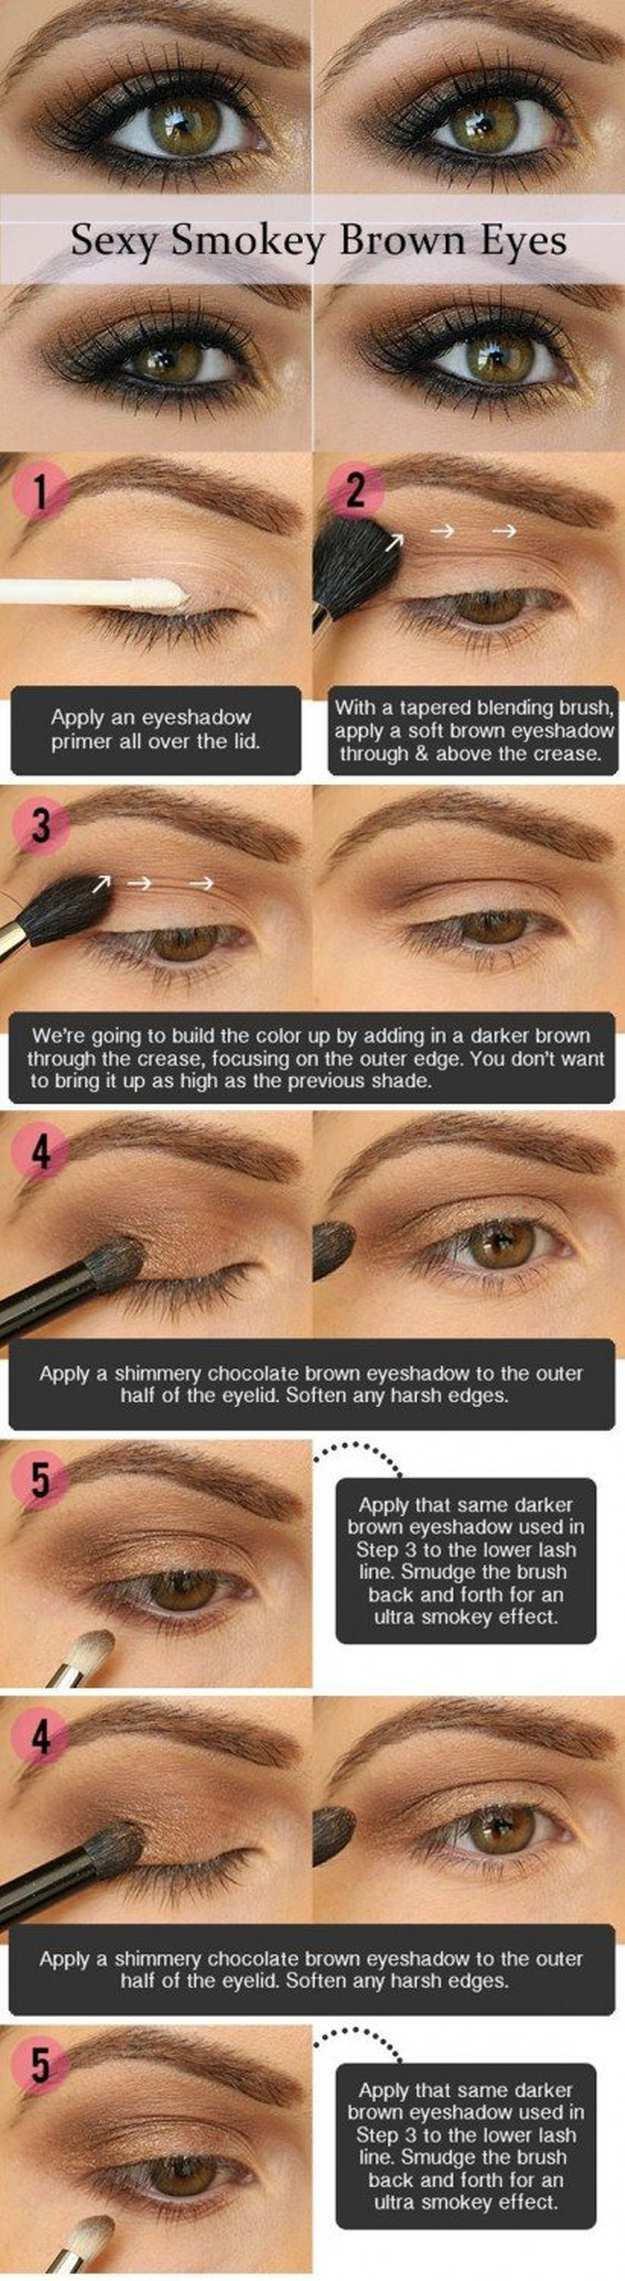 Eye Makeup For Brown Eyes Steps Gorgeous Easy Makeup Tutorials For Brown Eyes Makeup Tutorials